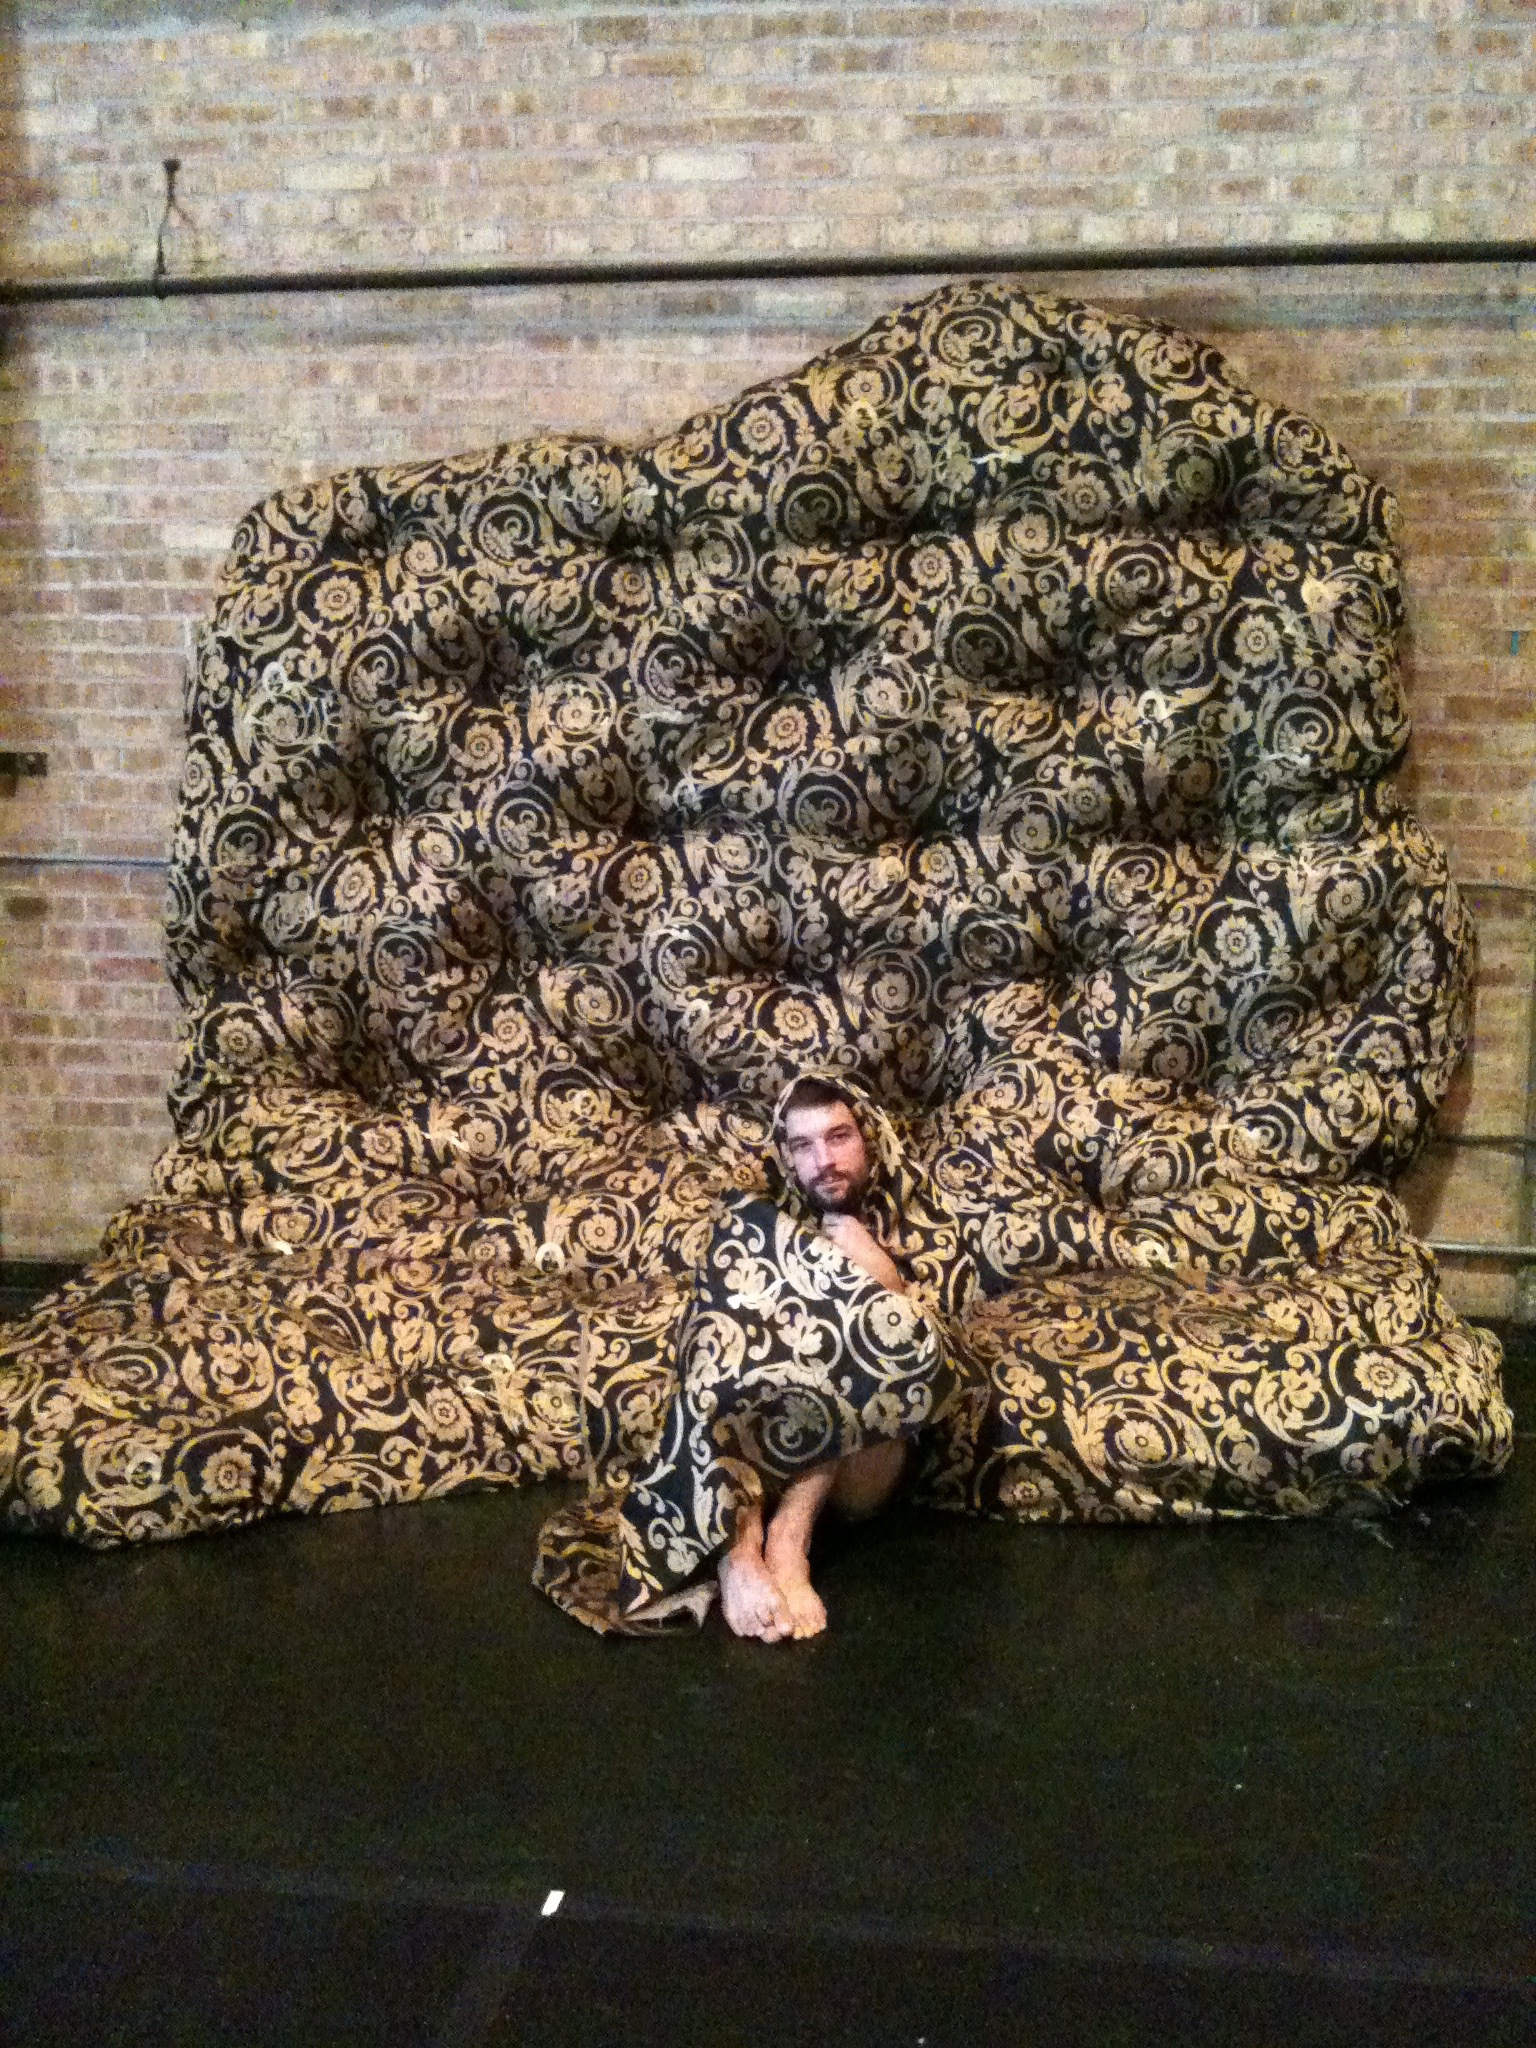 Upholstered wall made in collaboration with Max Wirsing (pictured) for Morgan Thorson's  Spaceholder Festival